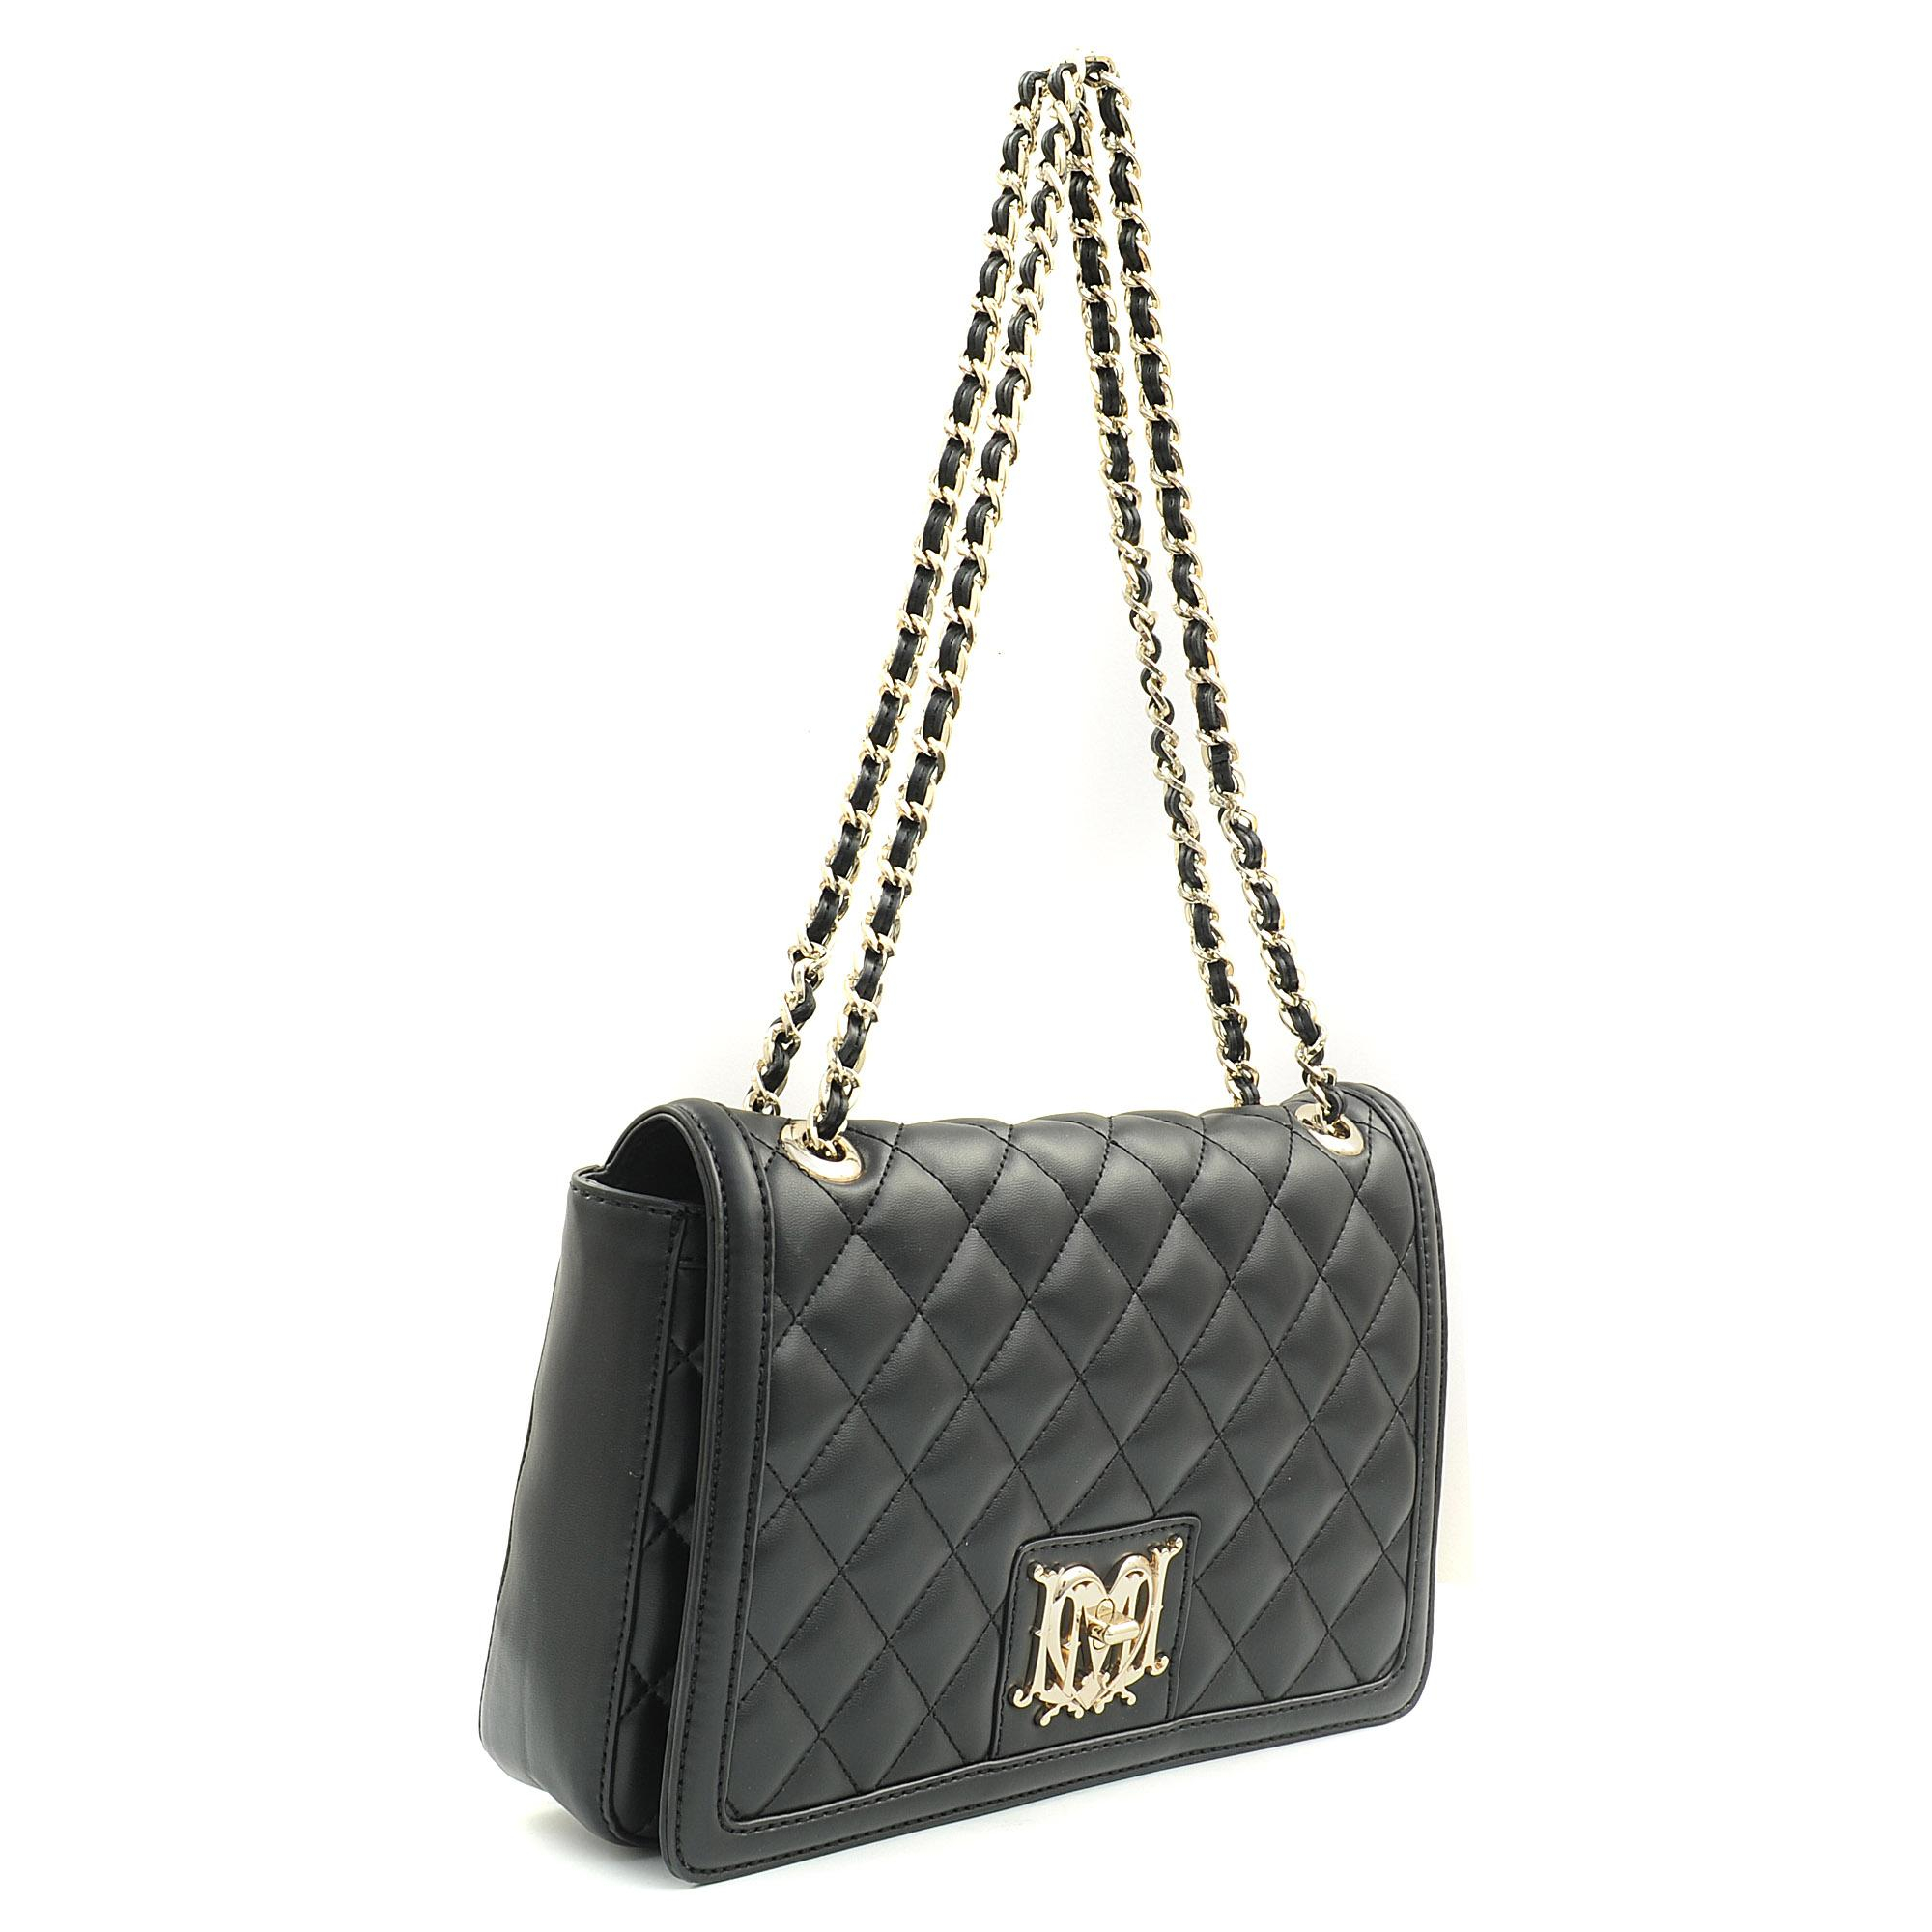 952062dda47a Love Moschino Super Quilted Flap Cover Bag in Black - Lyst